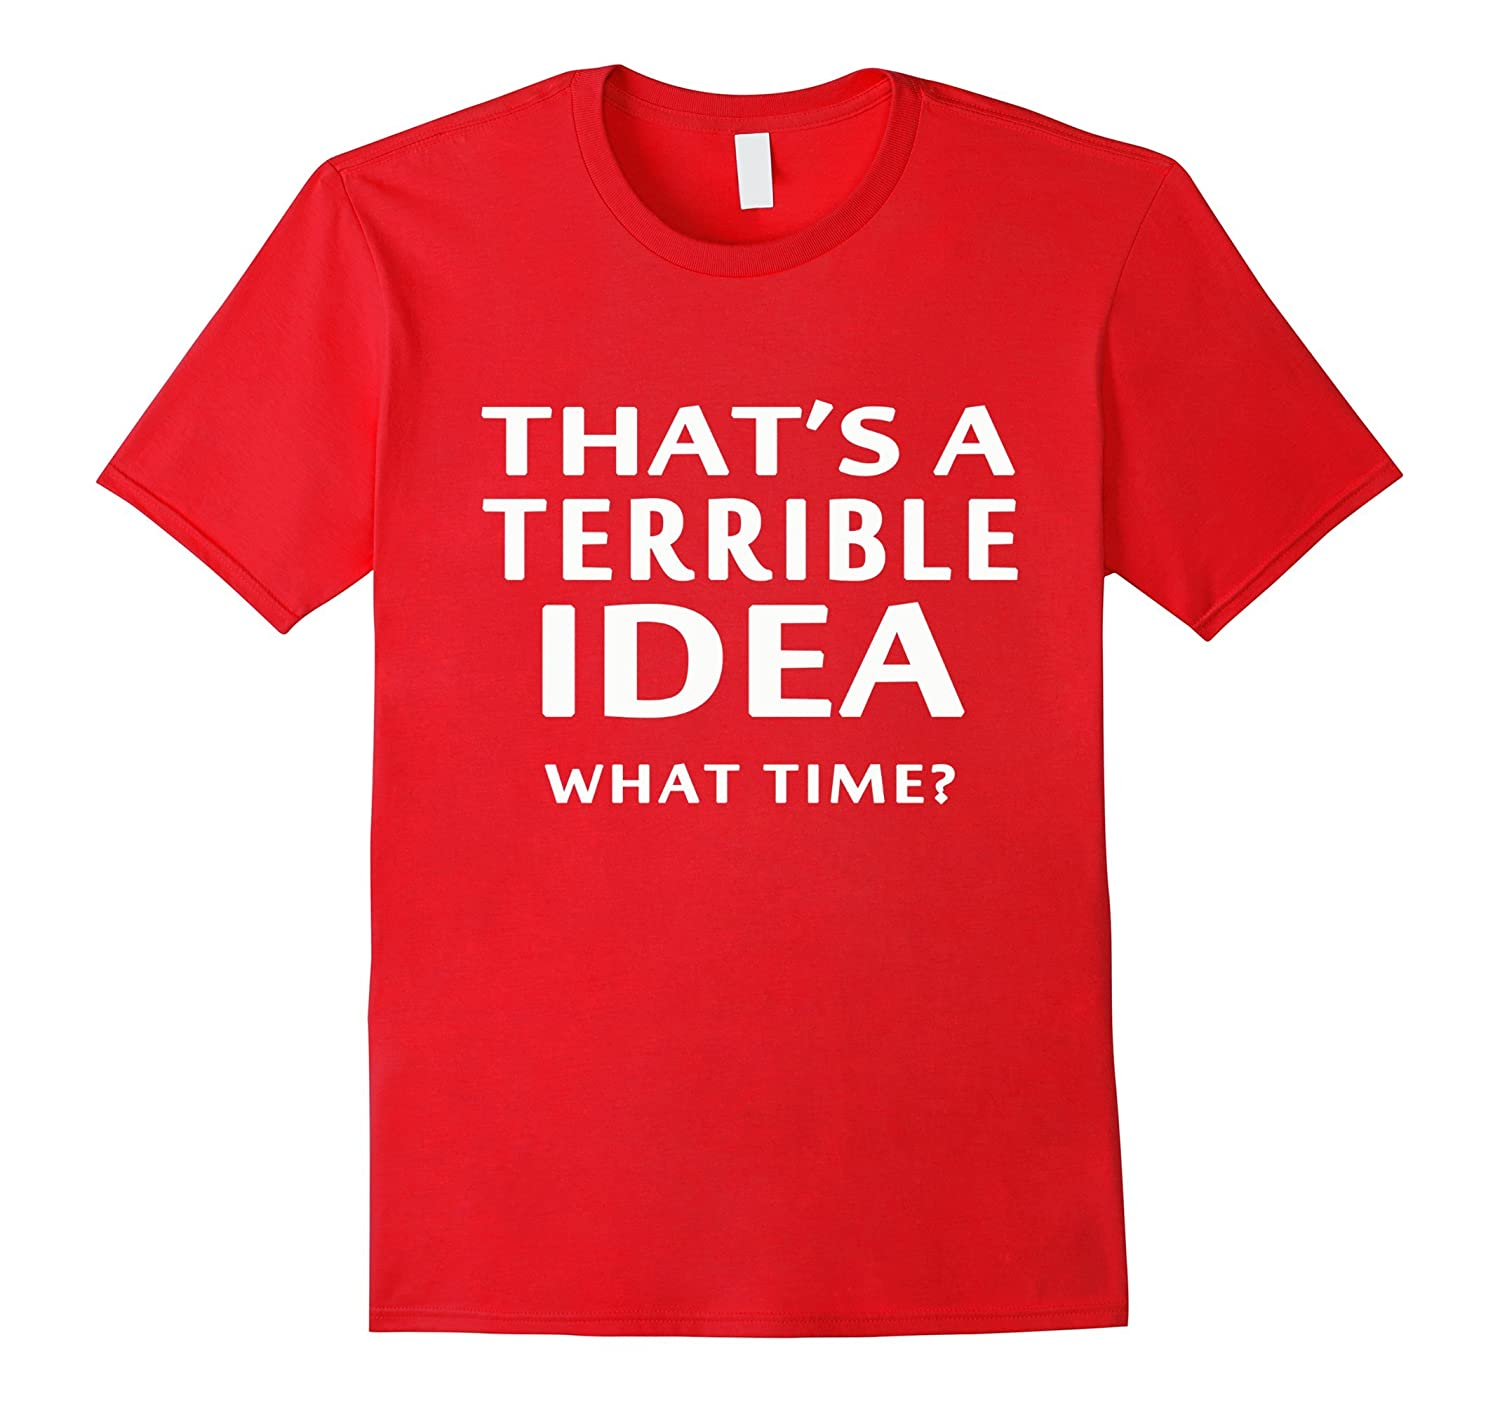 Thats a Terrible Idea What Time? T-Shirt Great Gift Idea-Vaci